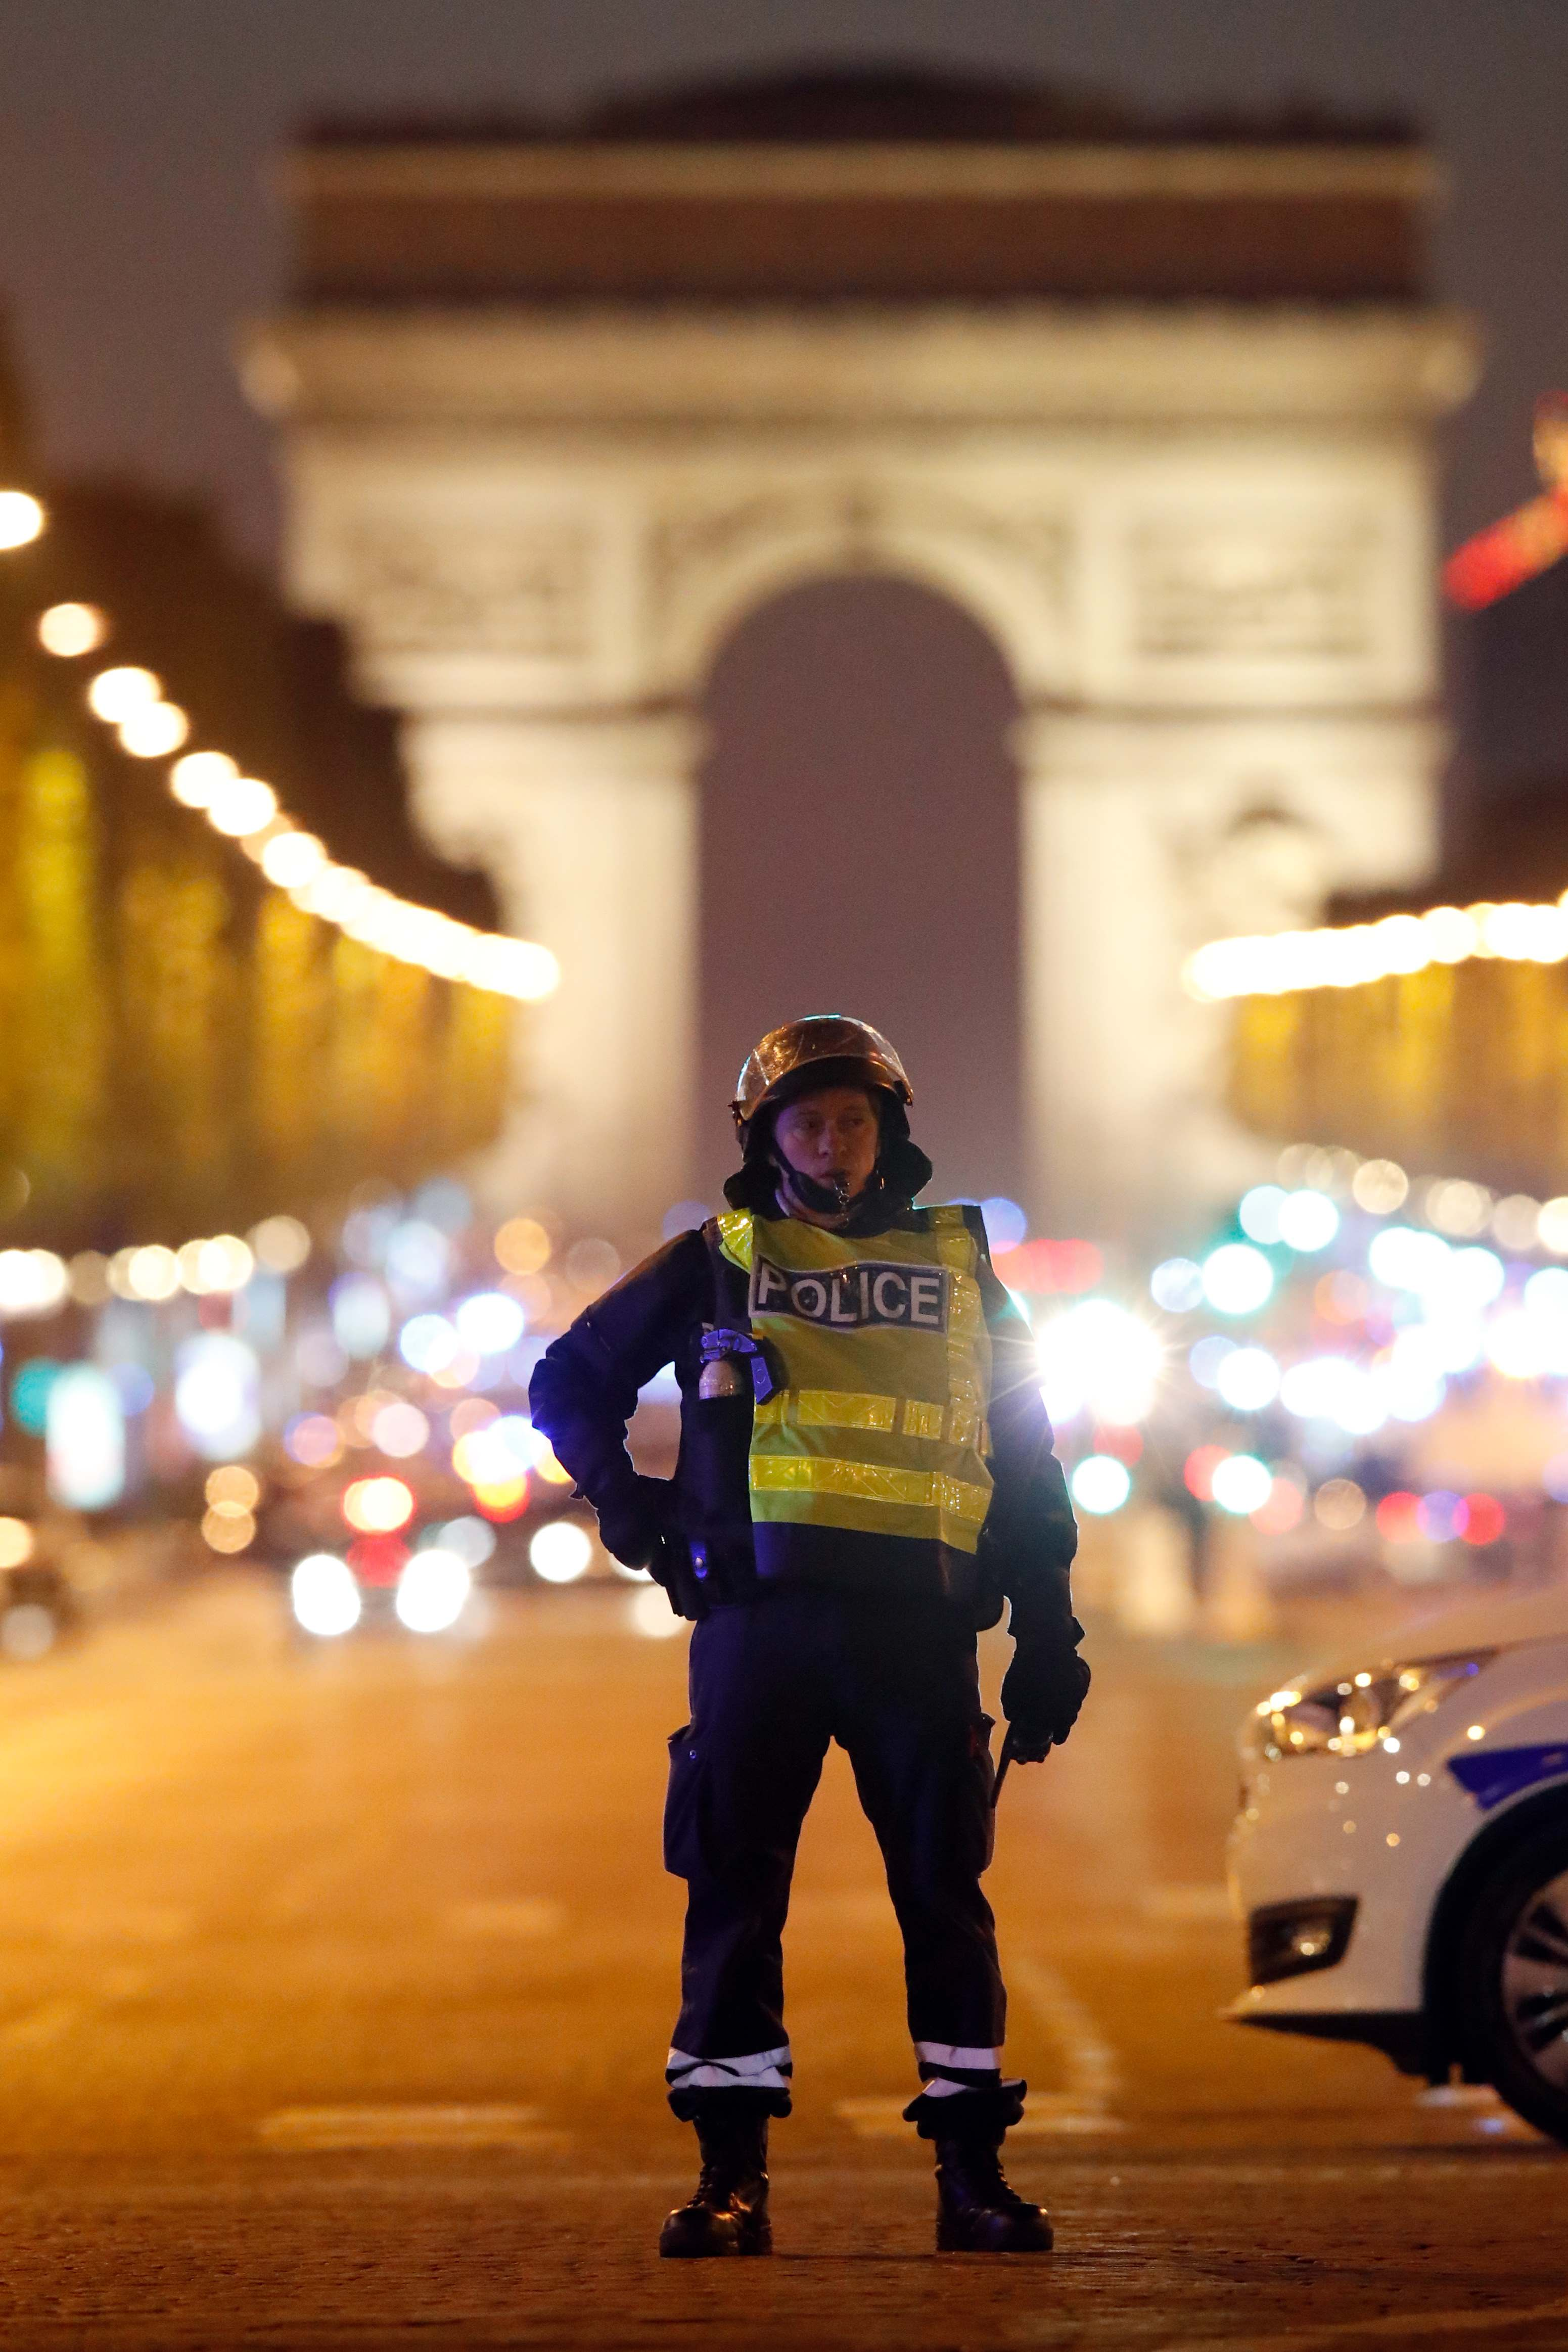 Police secure the Champs Elysees Avenue after one policeman was killed and another wounded in a shooting incident in Paris, France on April 20, 2017. (REUTERS/Christian Hartmann)